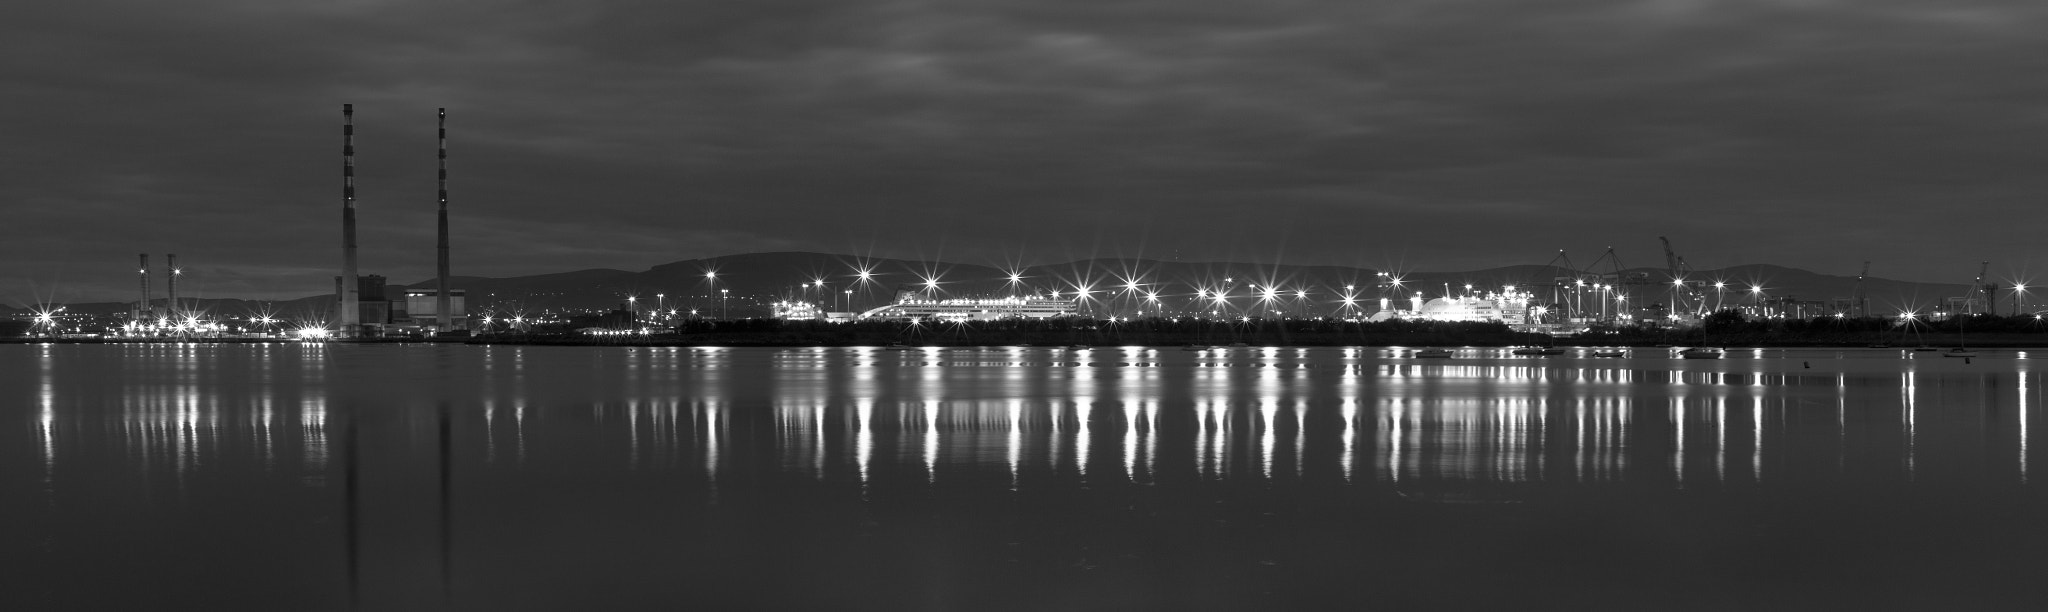 Photograph Poolbeg Panorama BW by Harry Guinness on 500px